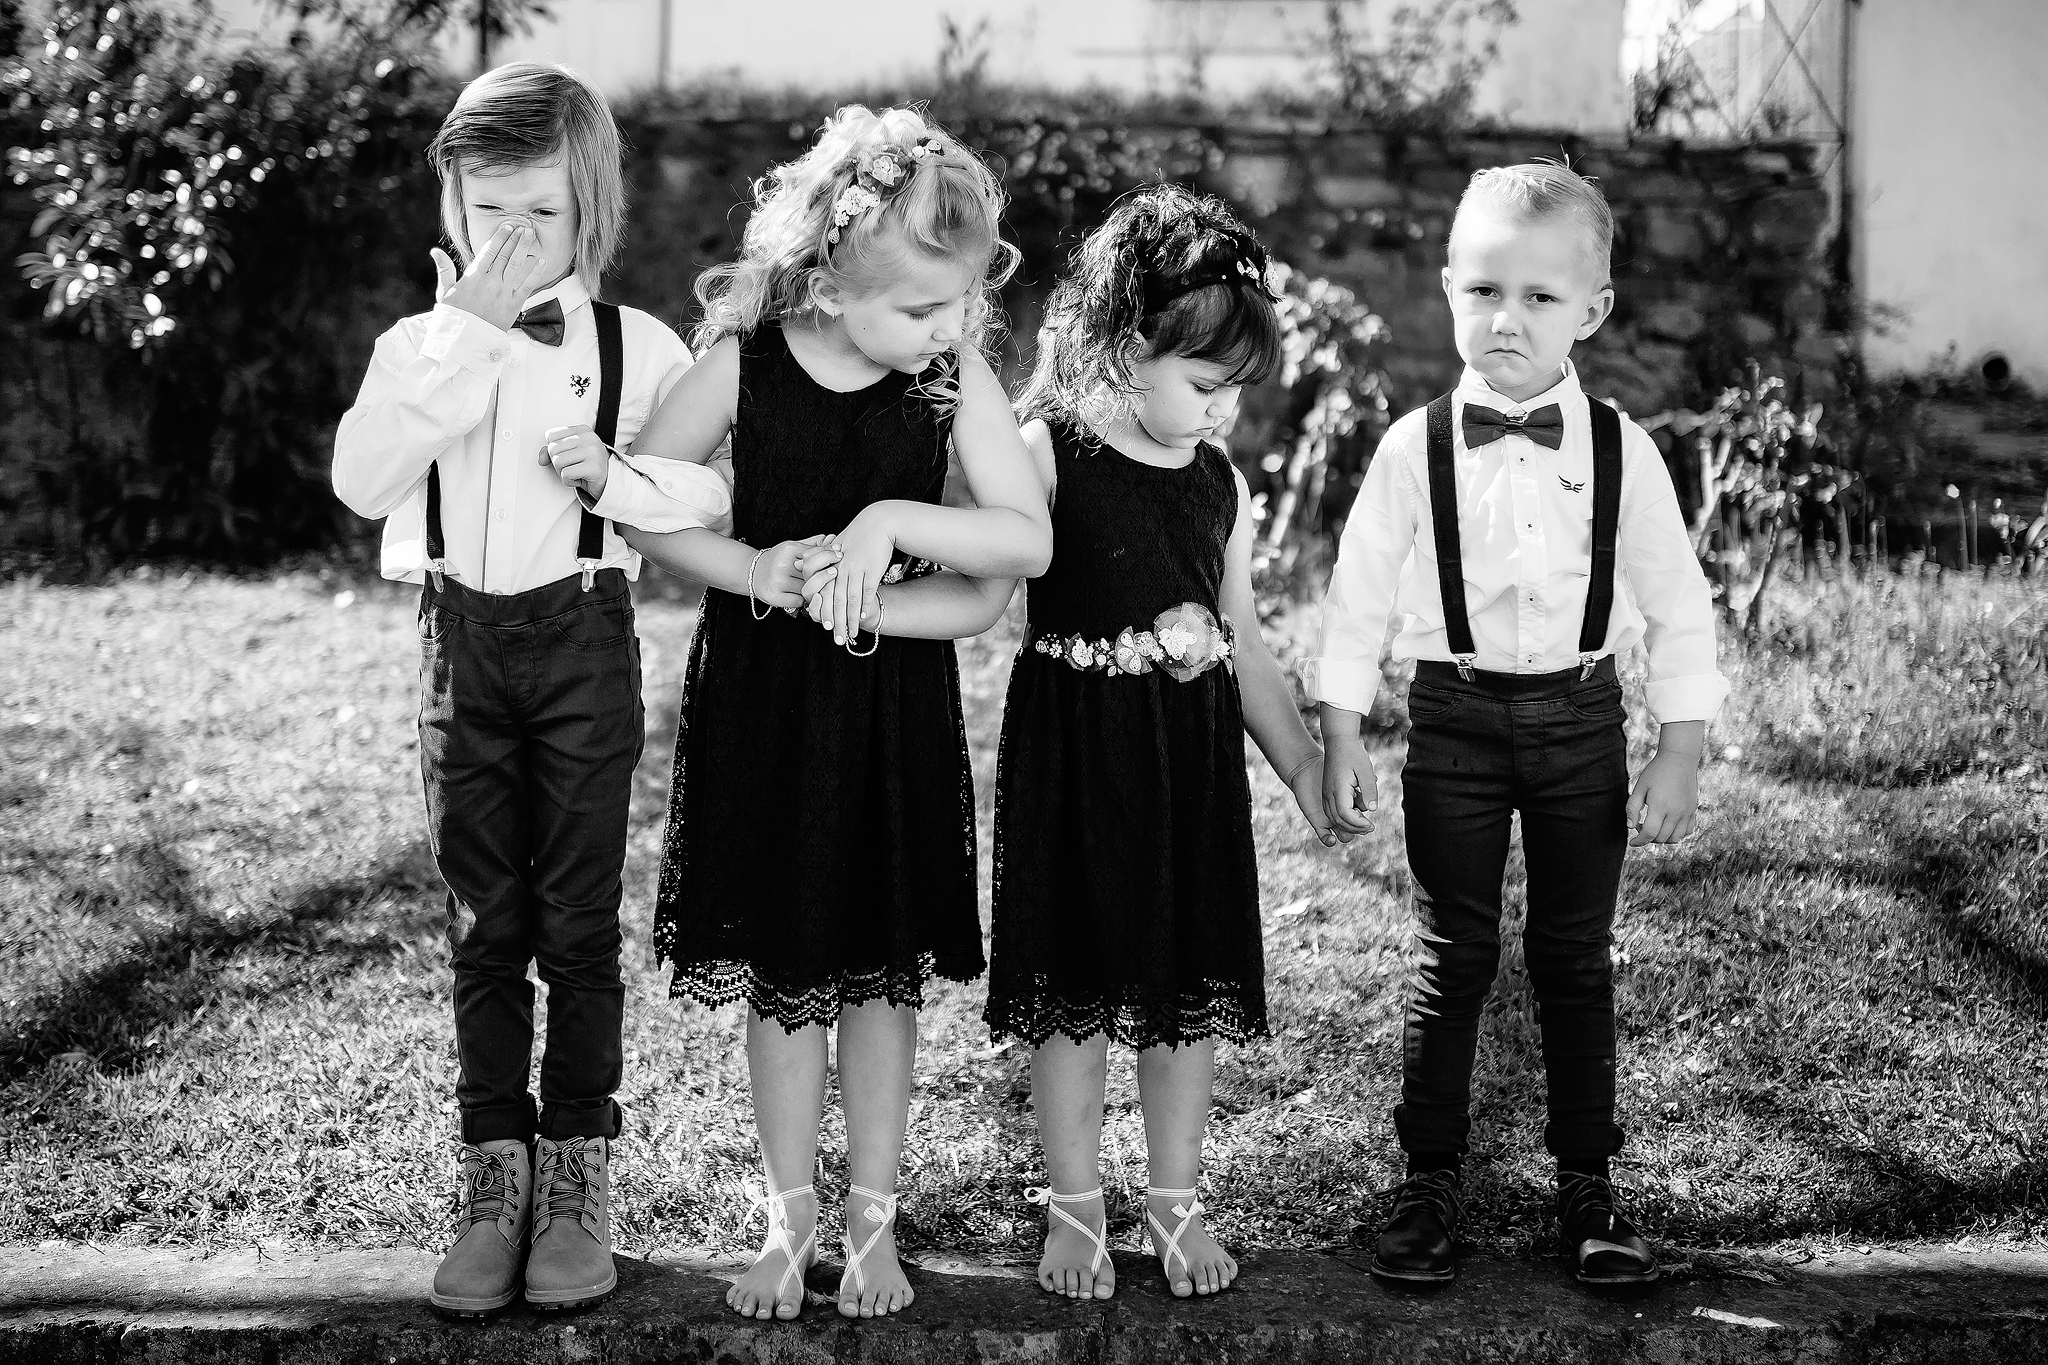 Four kids all dressed up - photo by Ruan Redelinghuys Photography